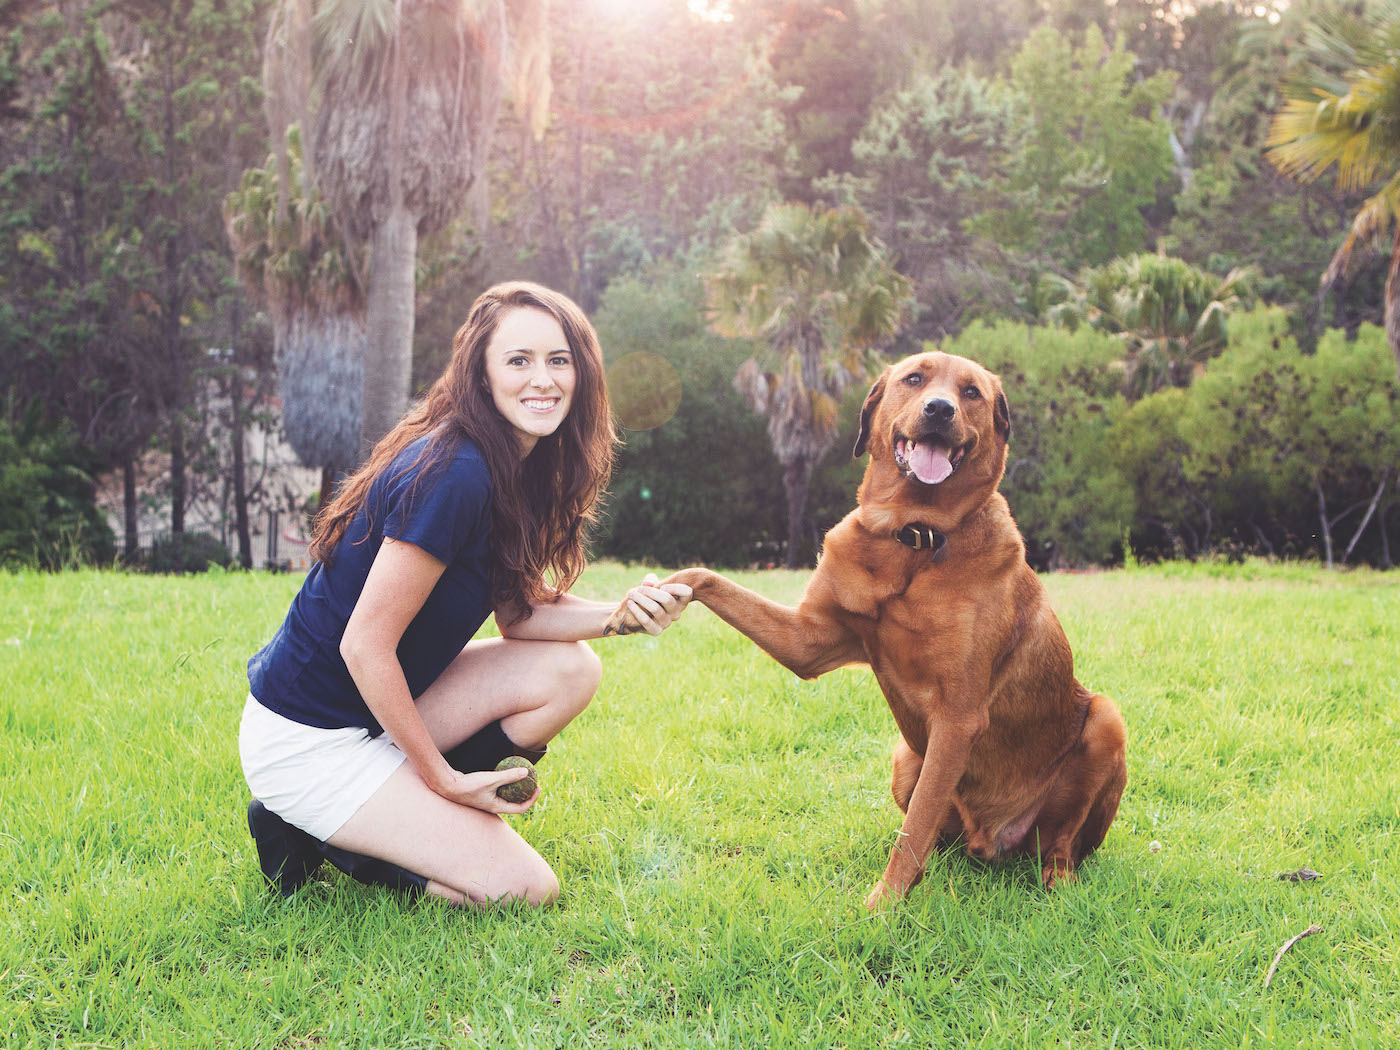 How To Build A Dog Training Business